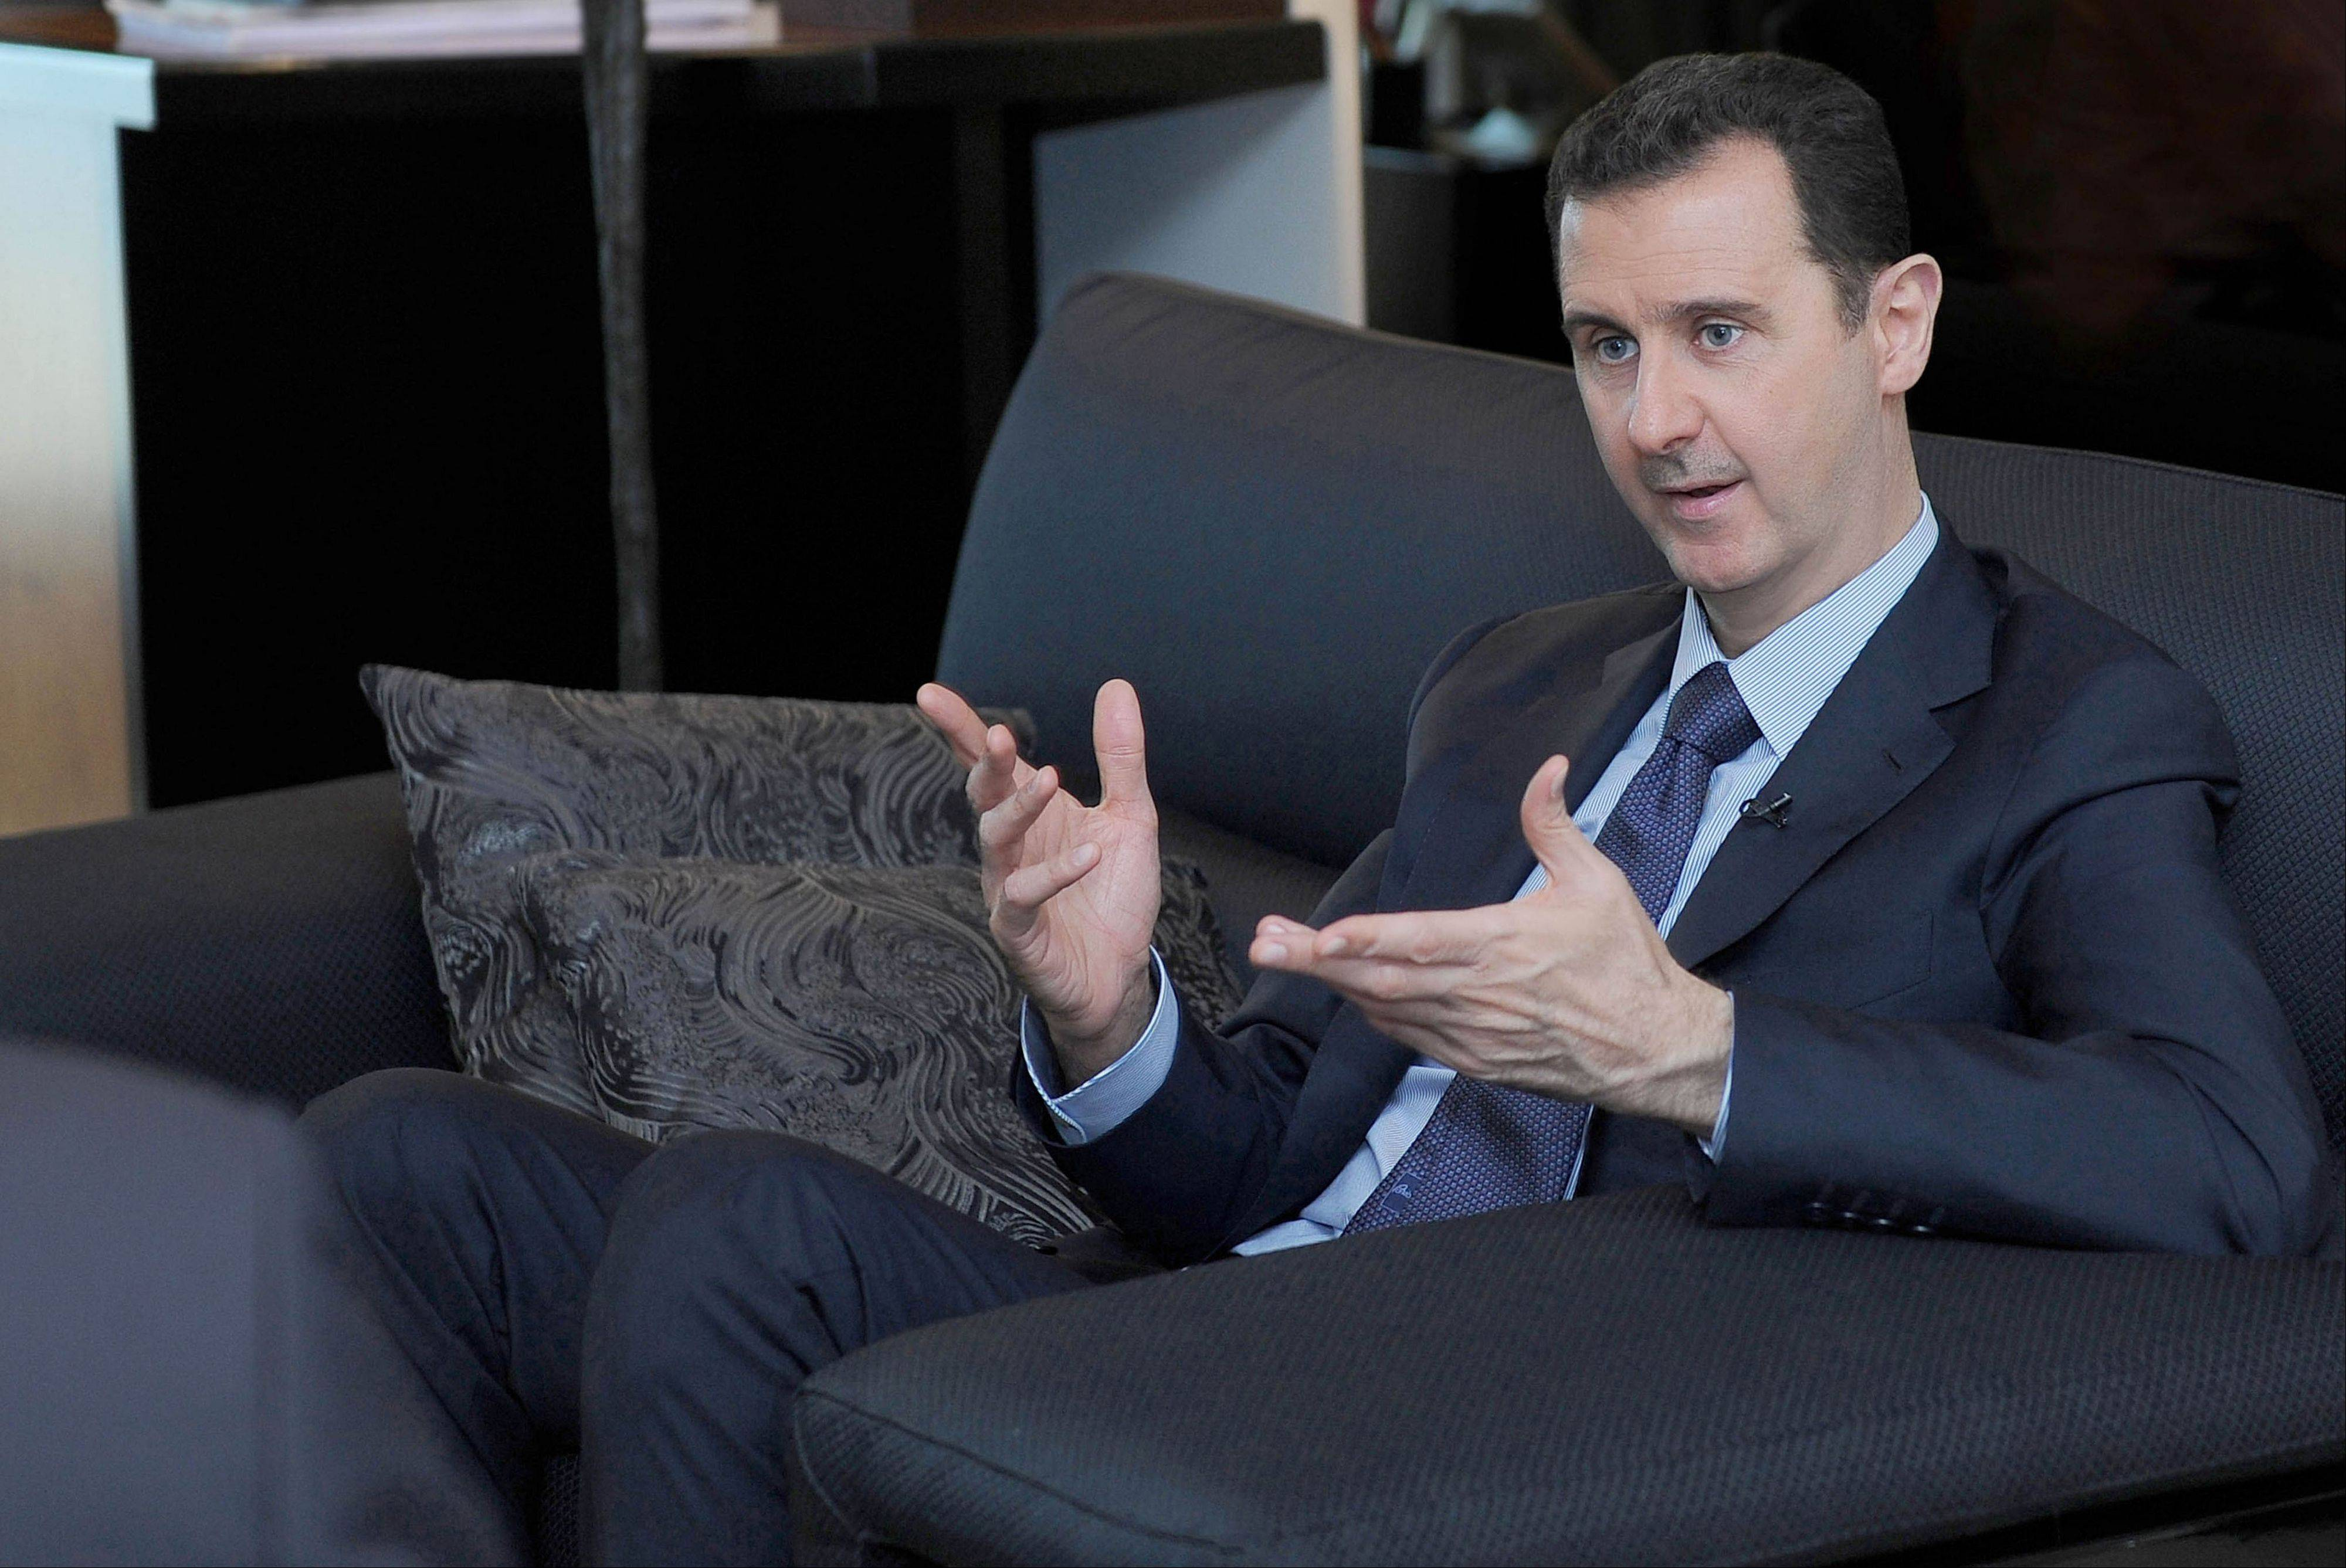 Syrian President Bashar Assad says his government has agreed to surrender its chemical weapons in response to Russia's initiative and not because of the U.S. threat of attack.